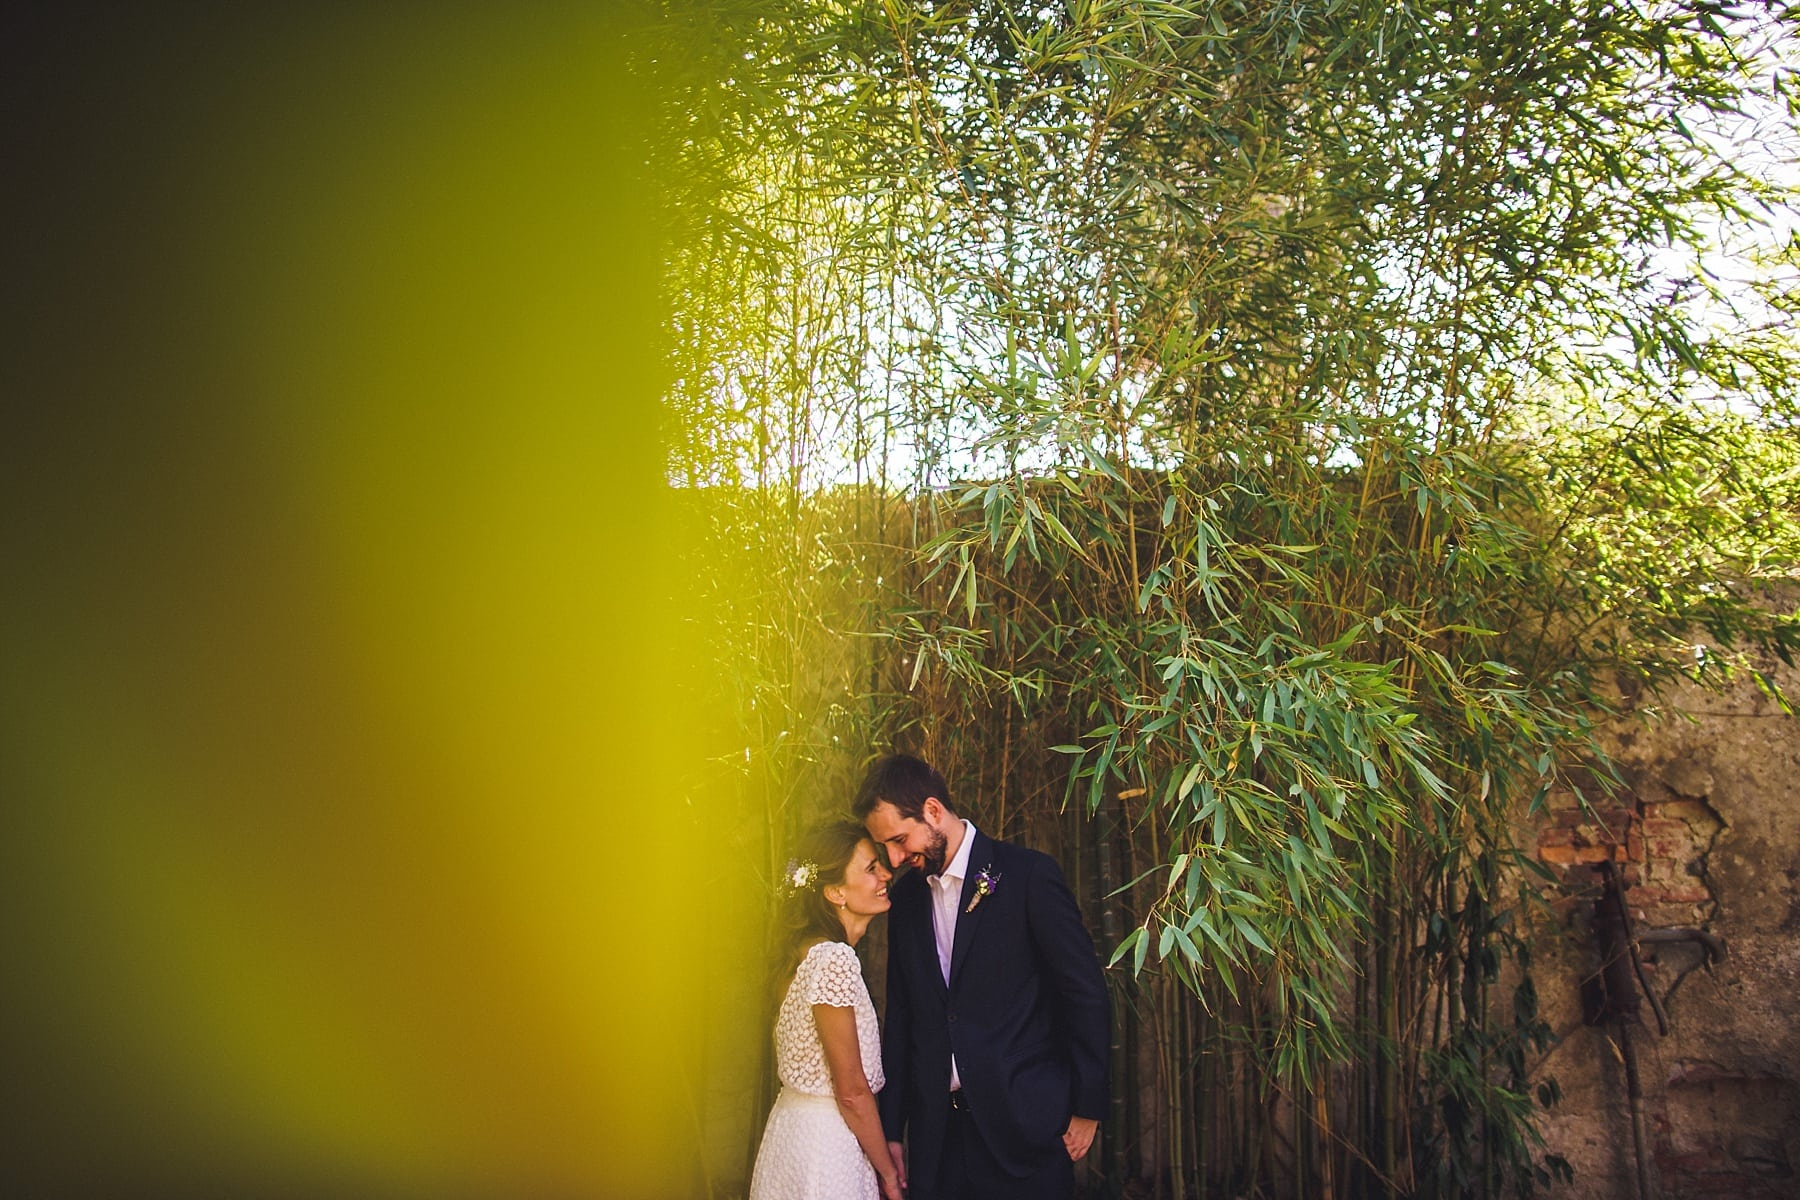 Italian bride and groom,tuscany wedding photographer,